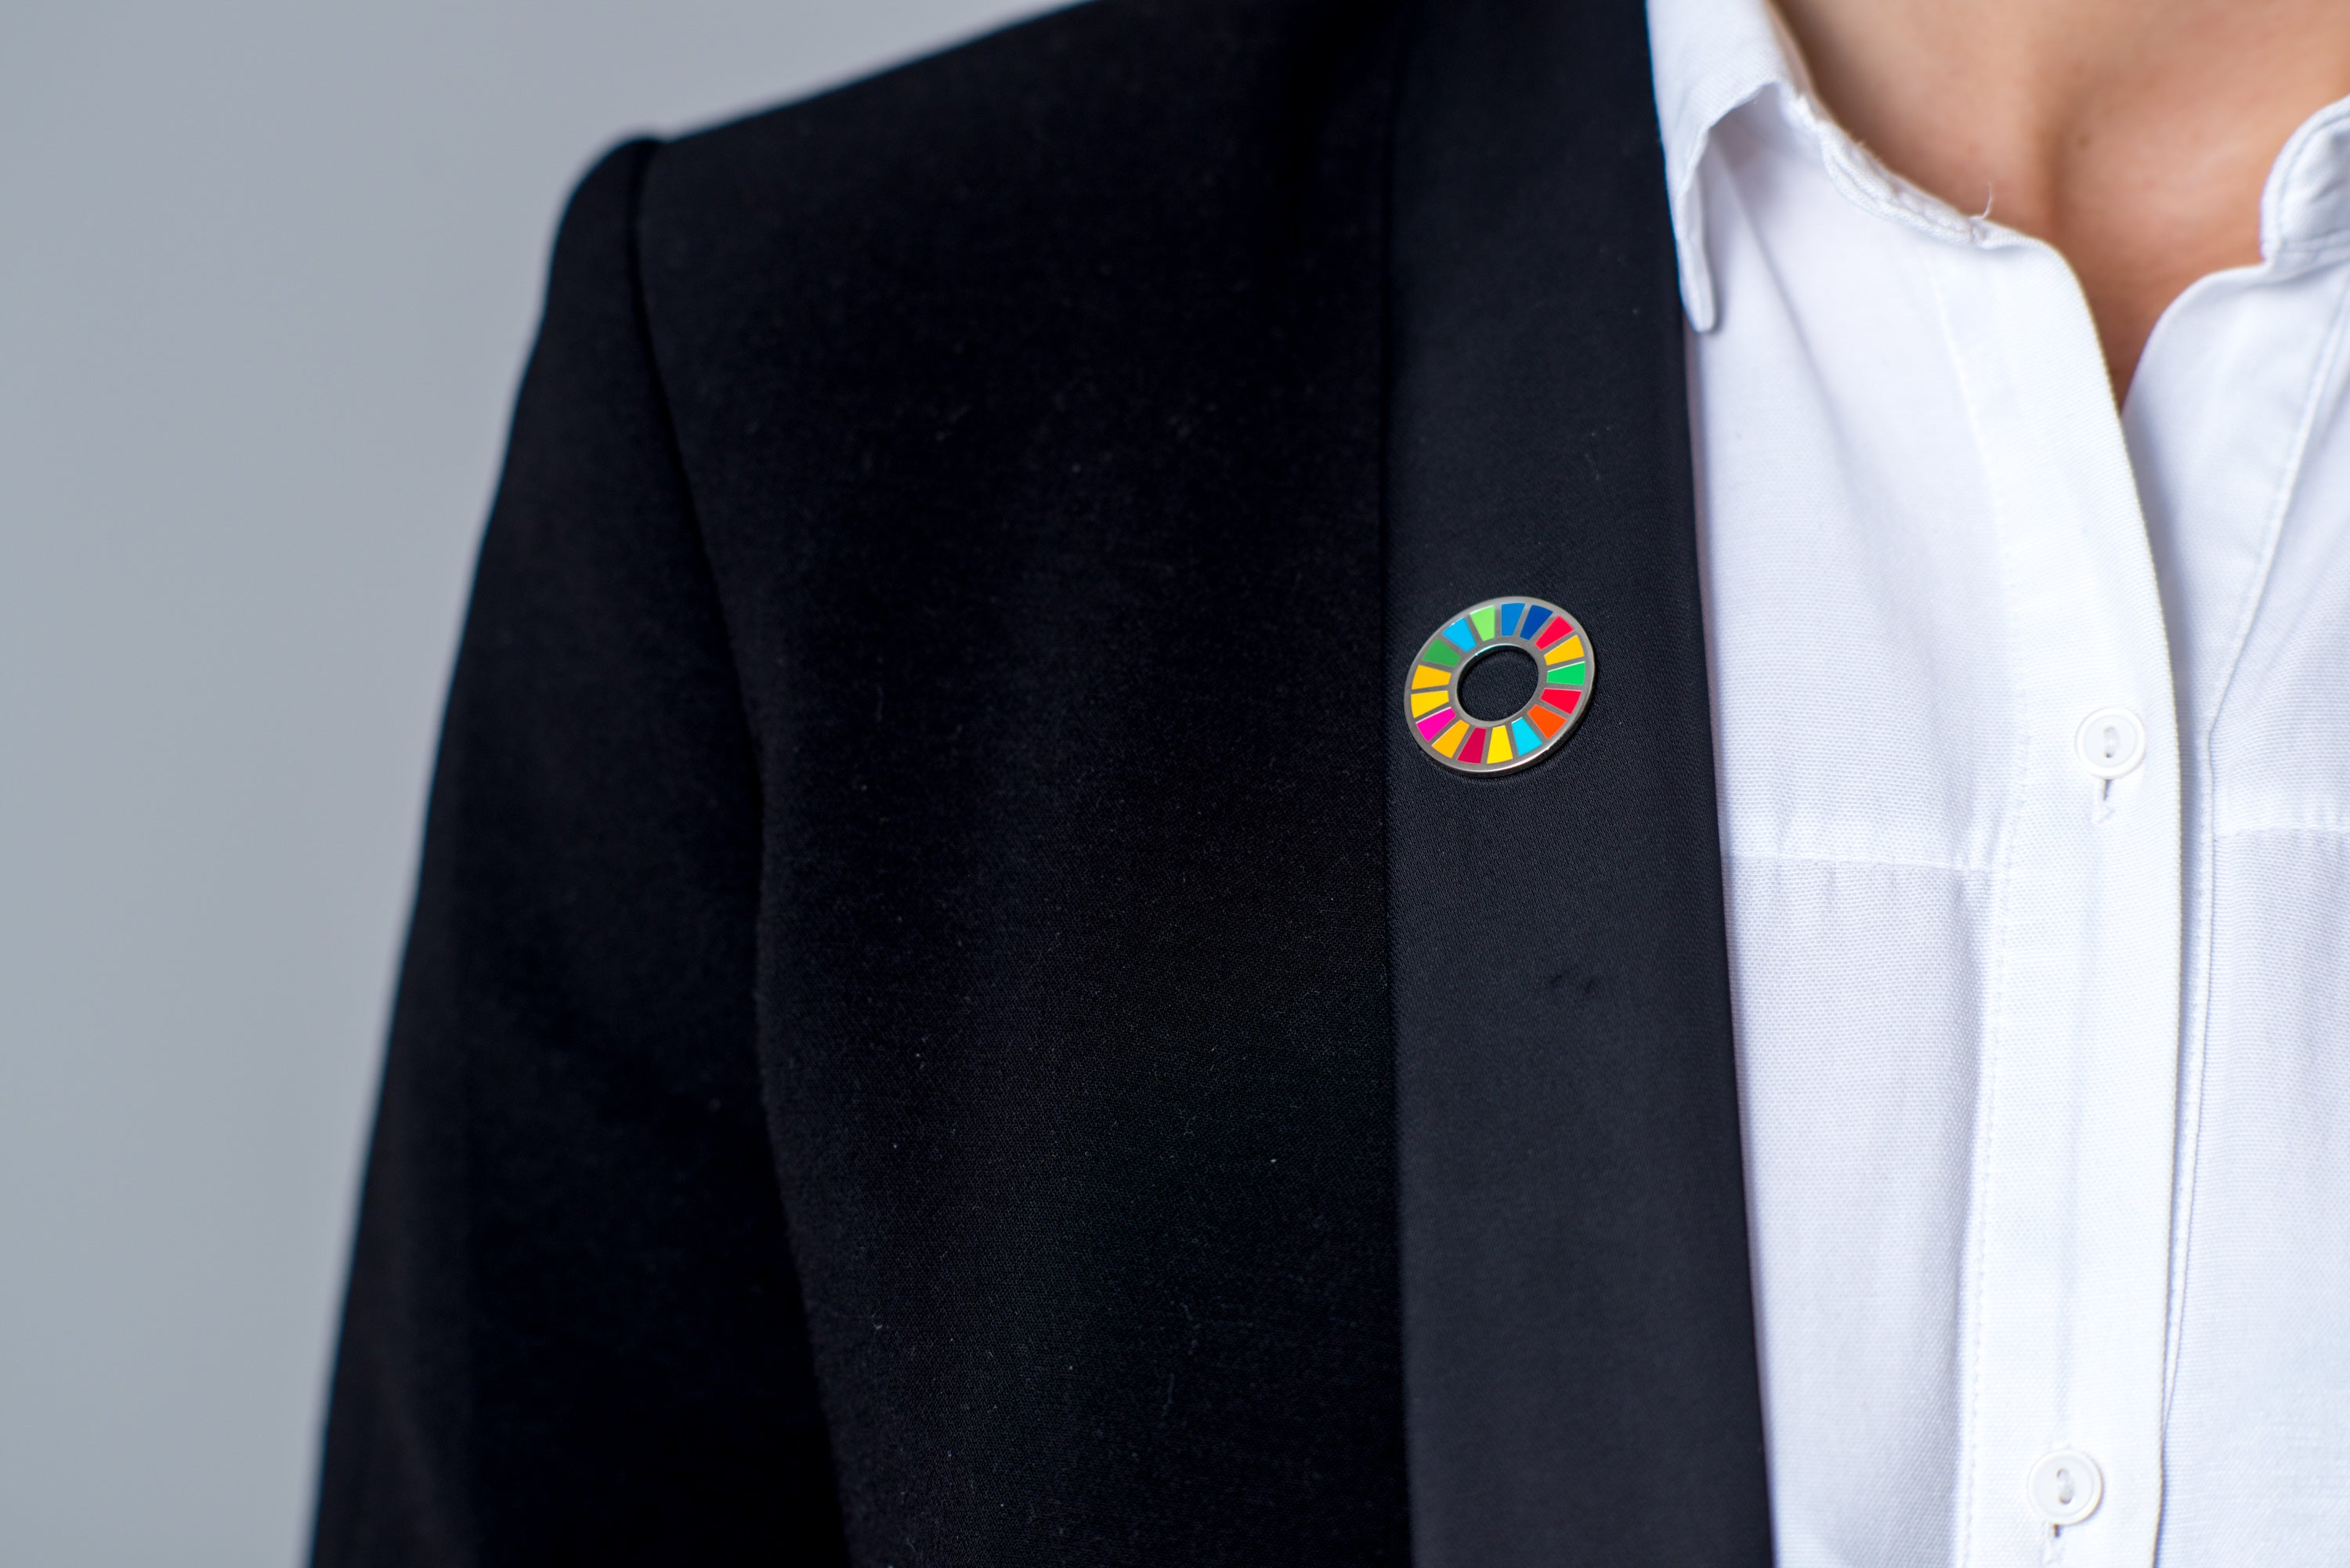 The Global Goals pin